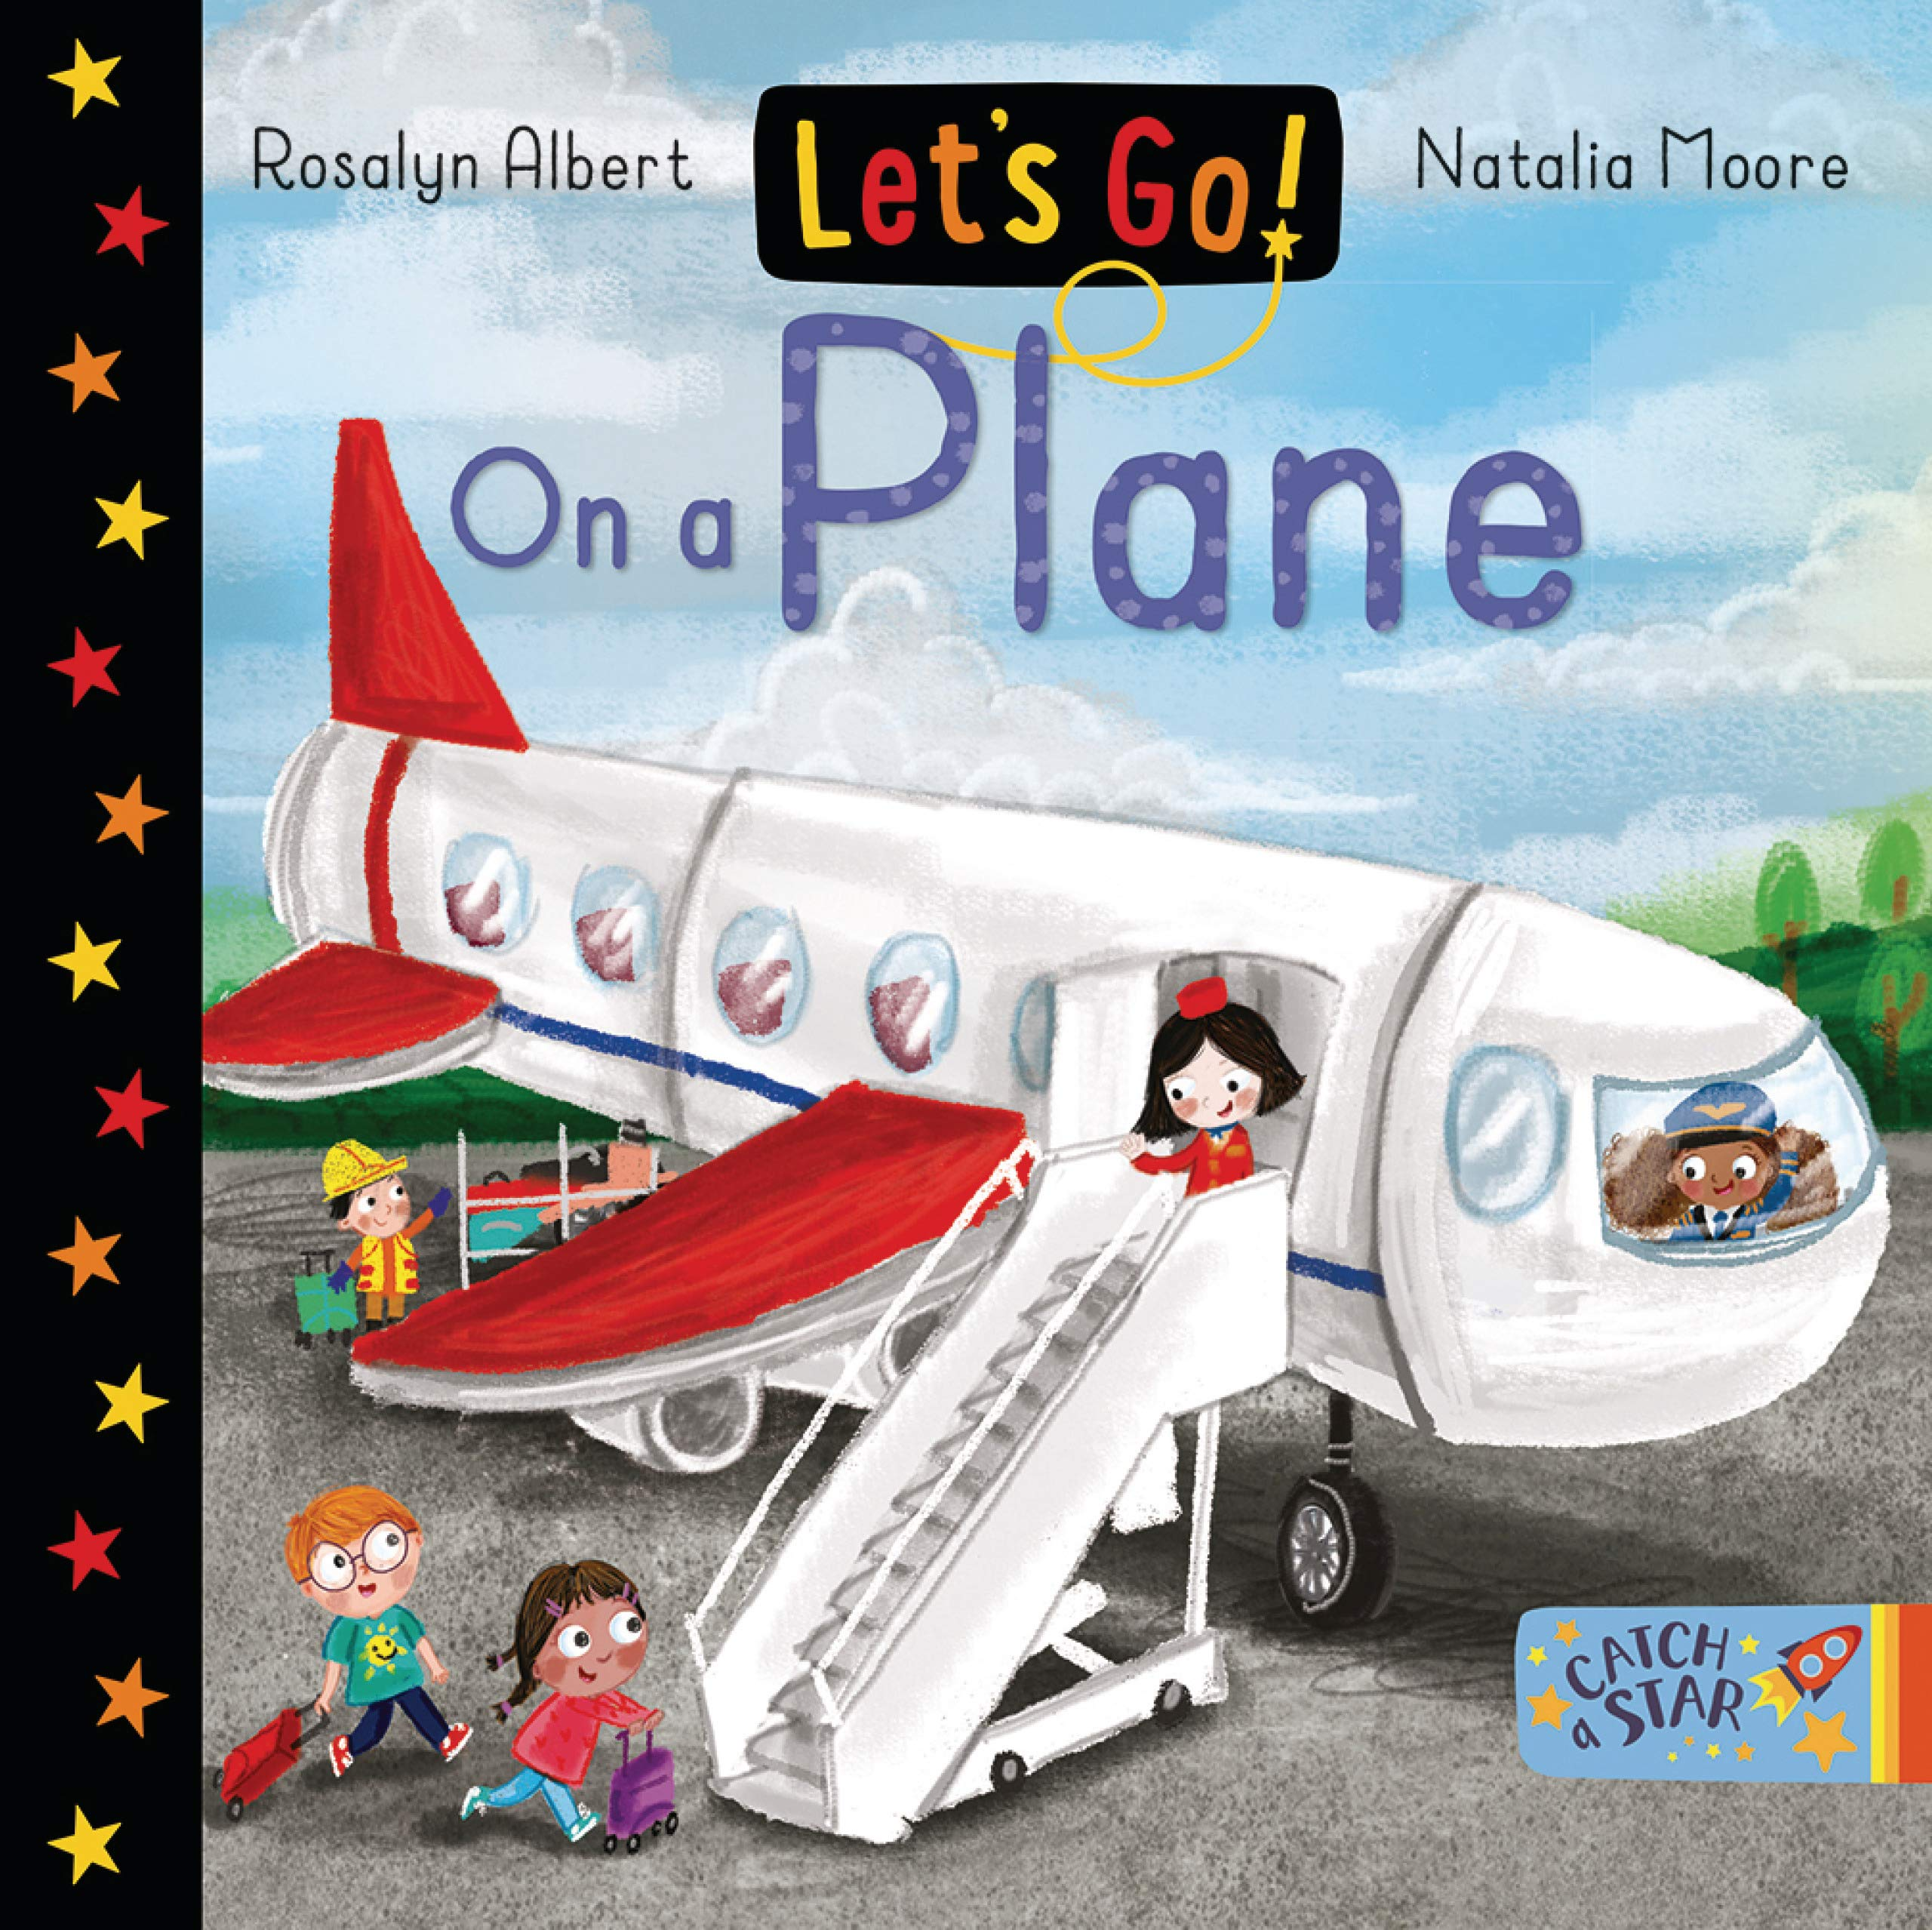 celebrate-picture-books-picture-book-review-let's-go-on-a-plane-cover